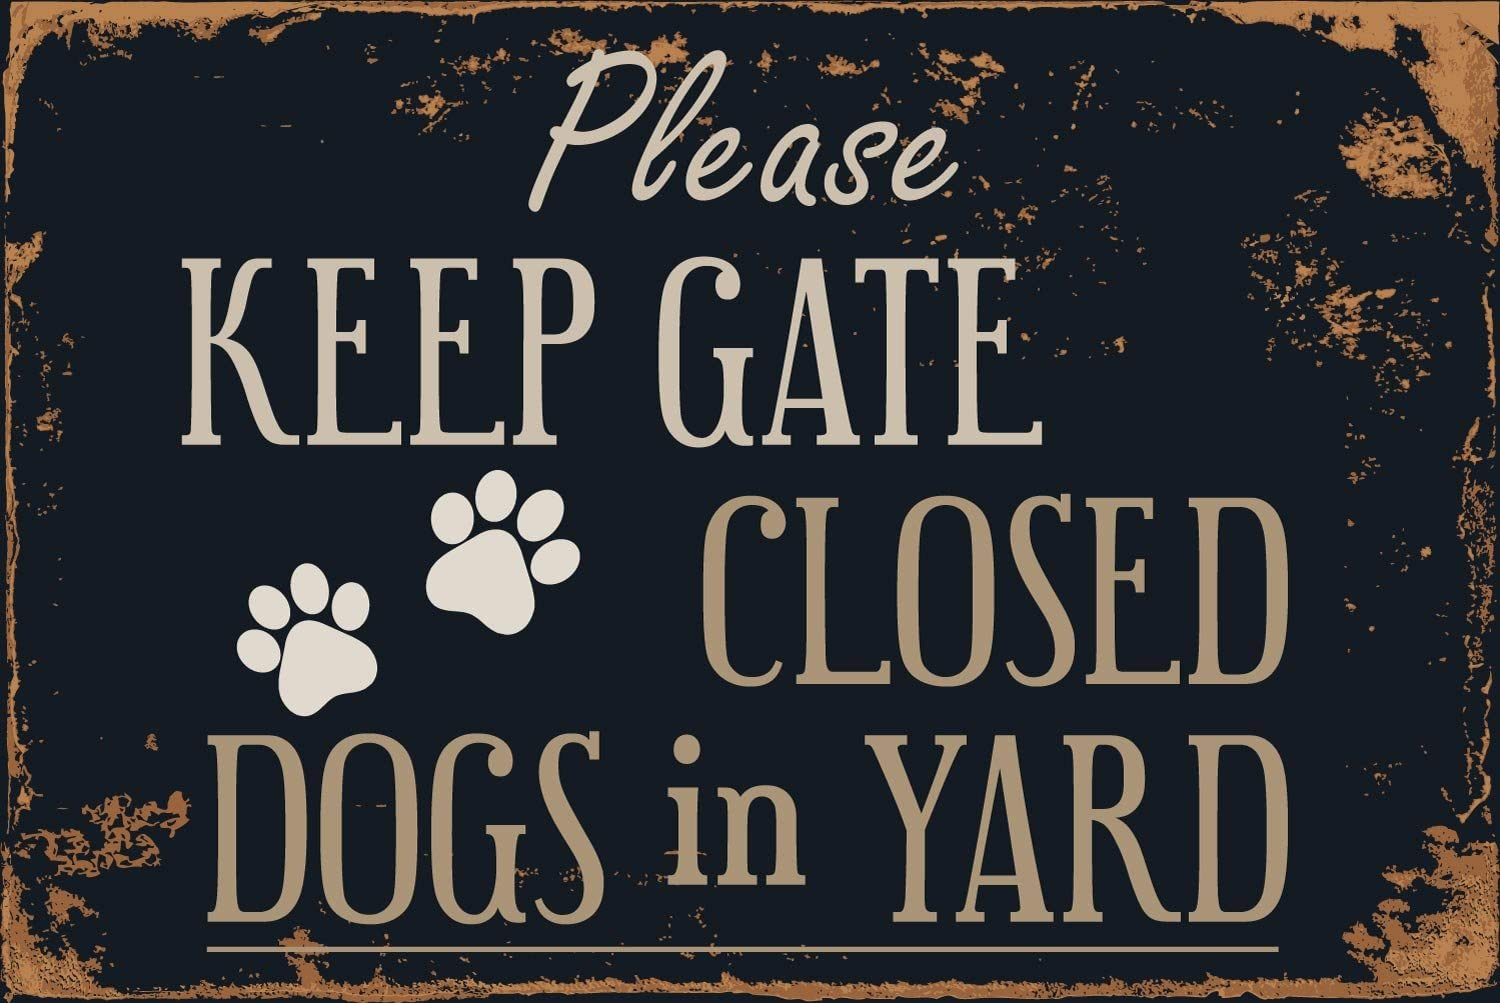 If Gate Is Closed Beware of Dogs In Yard Aluminum Security Metal Novelty Sign